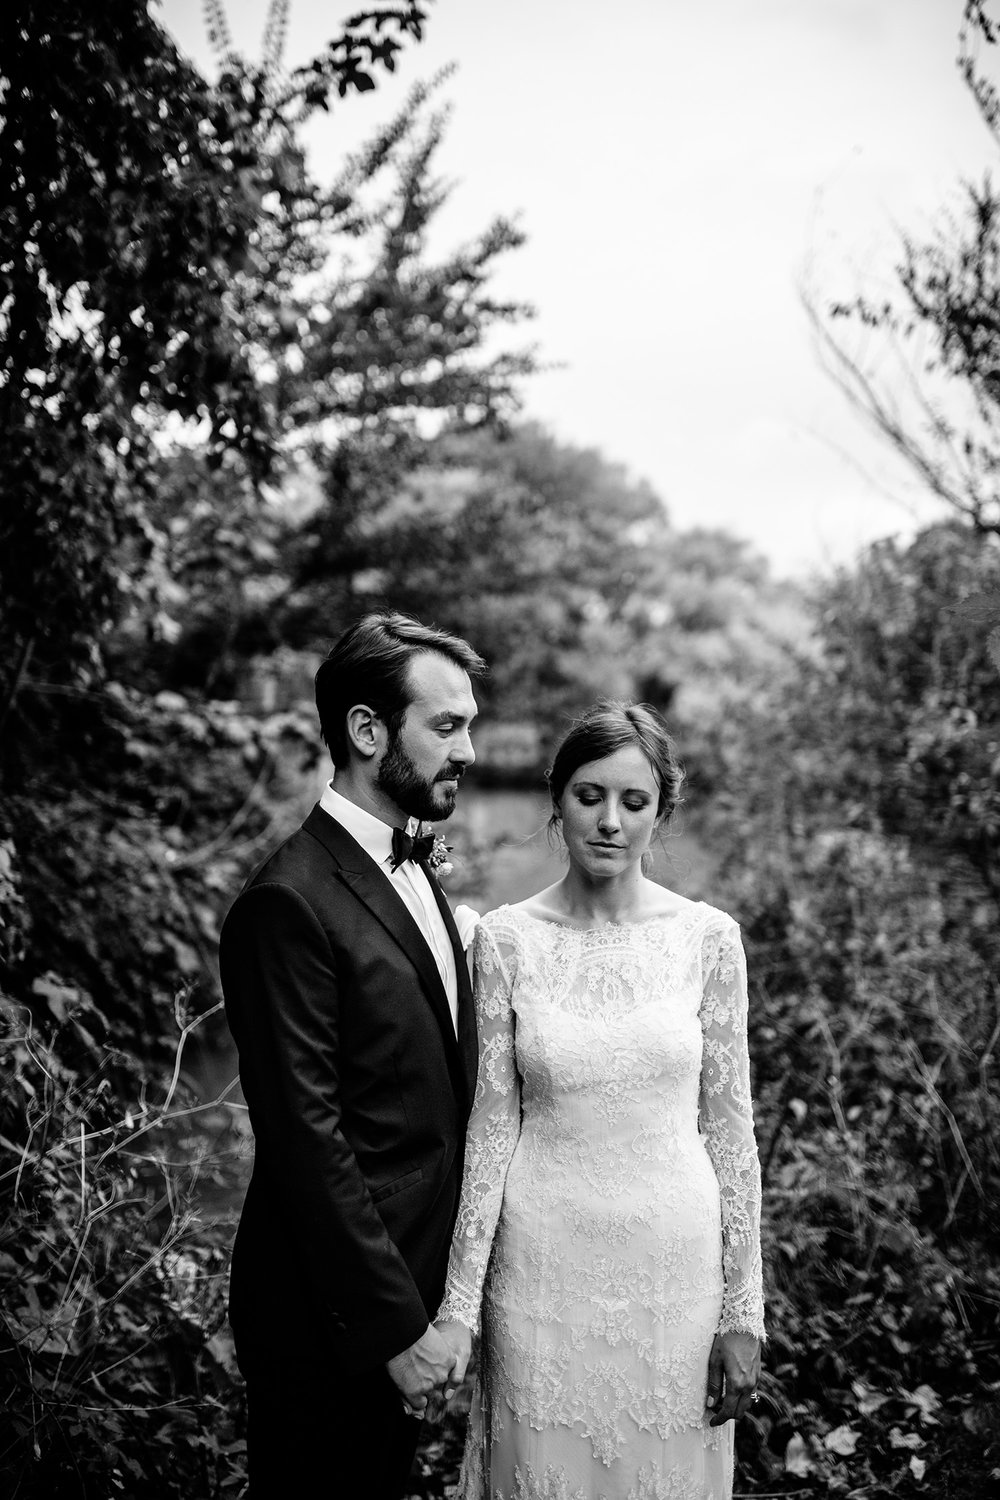 CHILDERLEY HALL CAMBRIDGE WEDDING 83.JPG